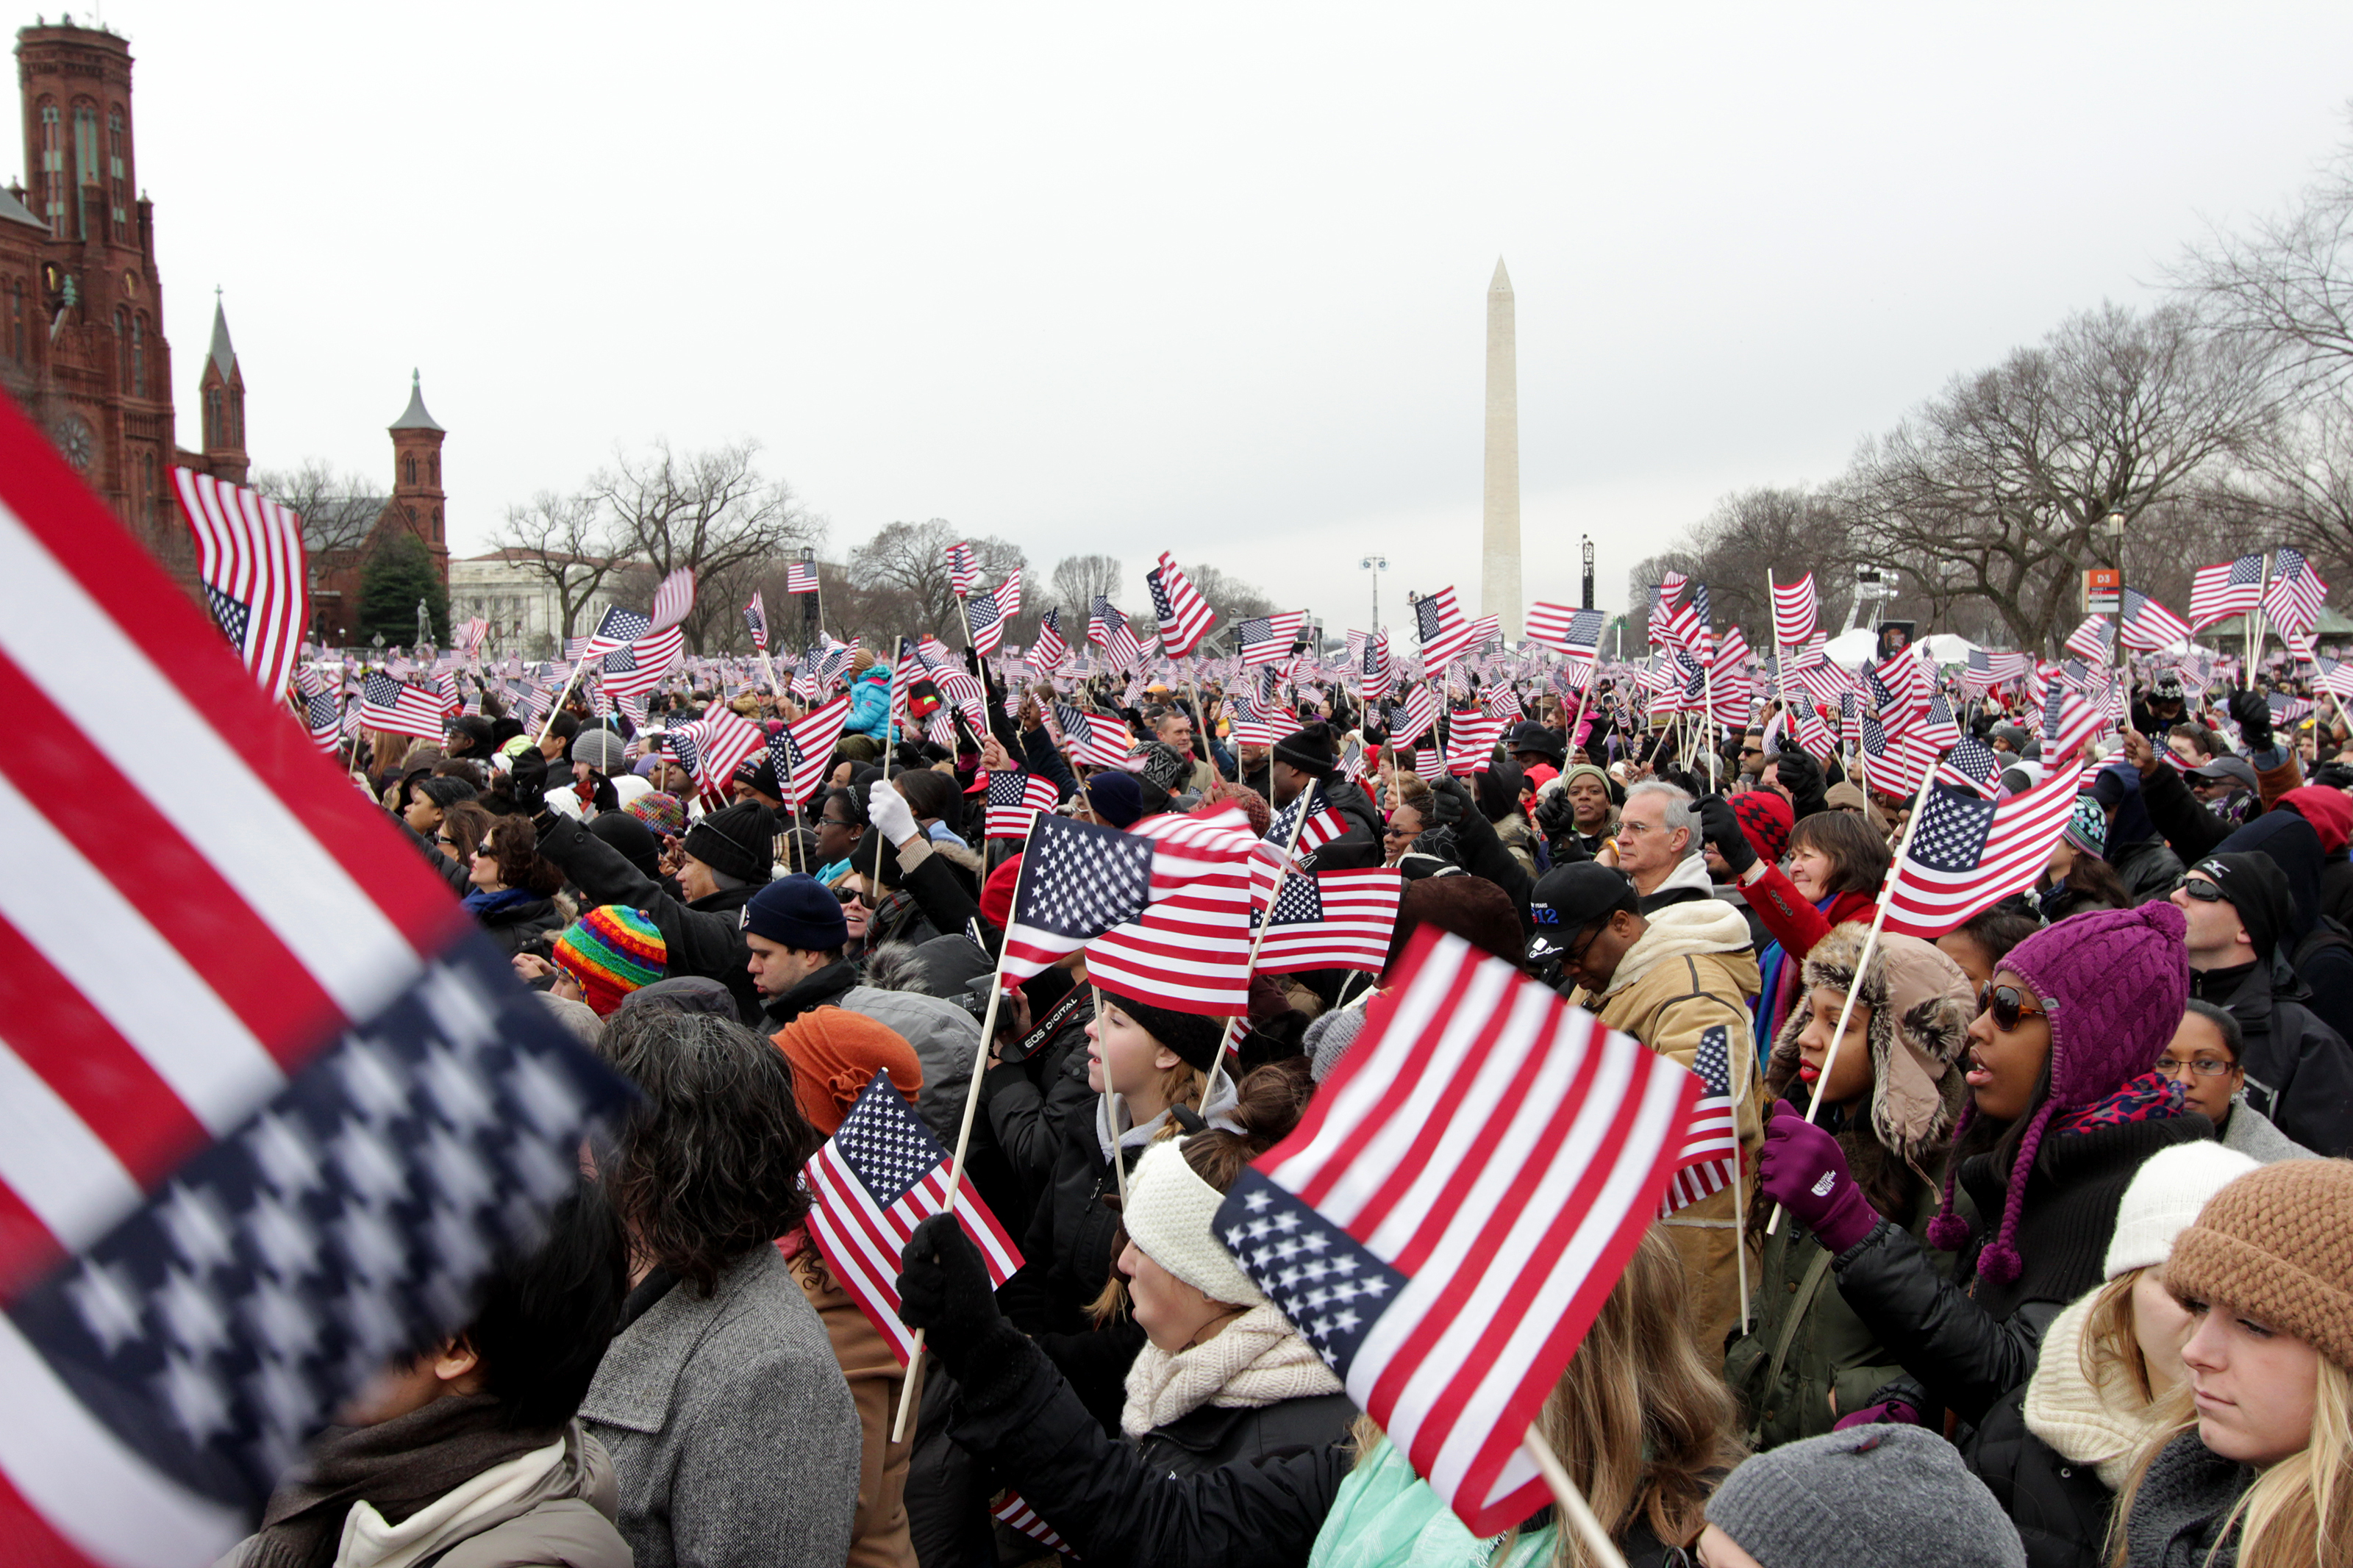 Obama's Inaugural Speech Pushes Equal Rights